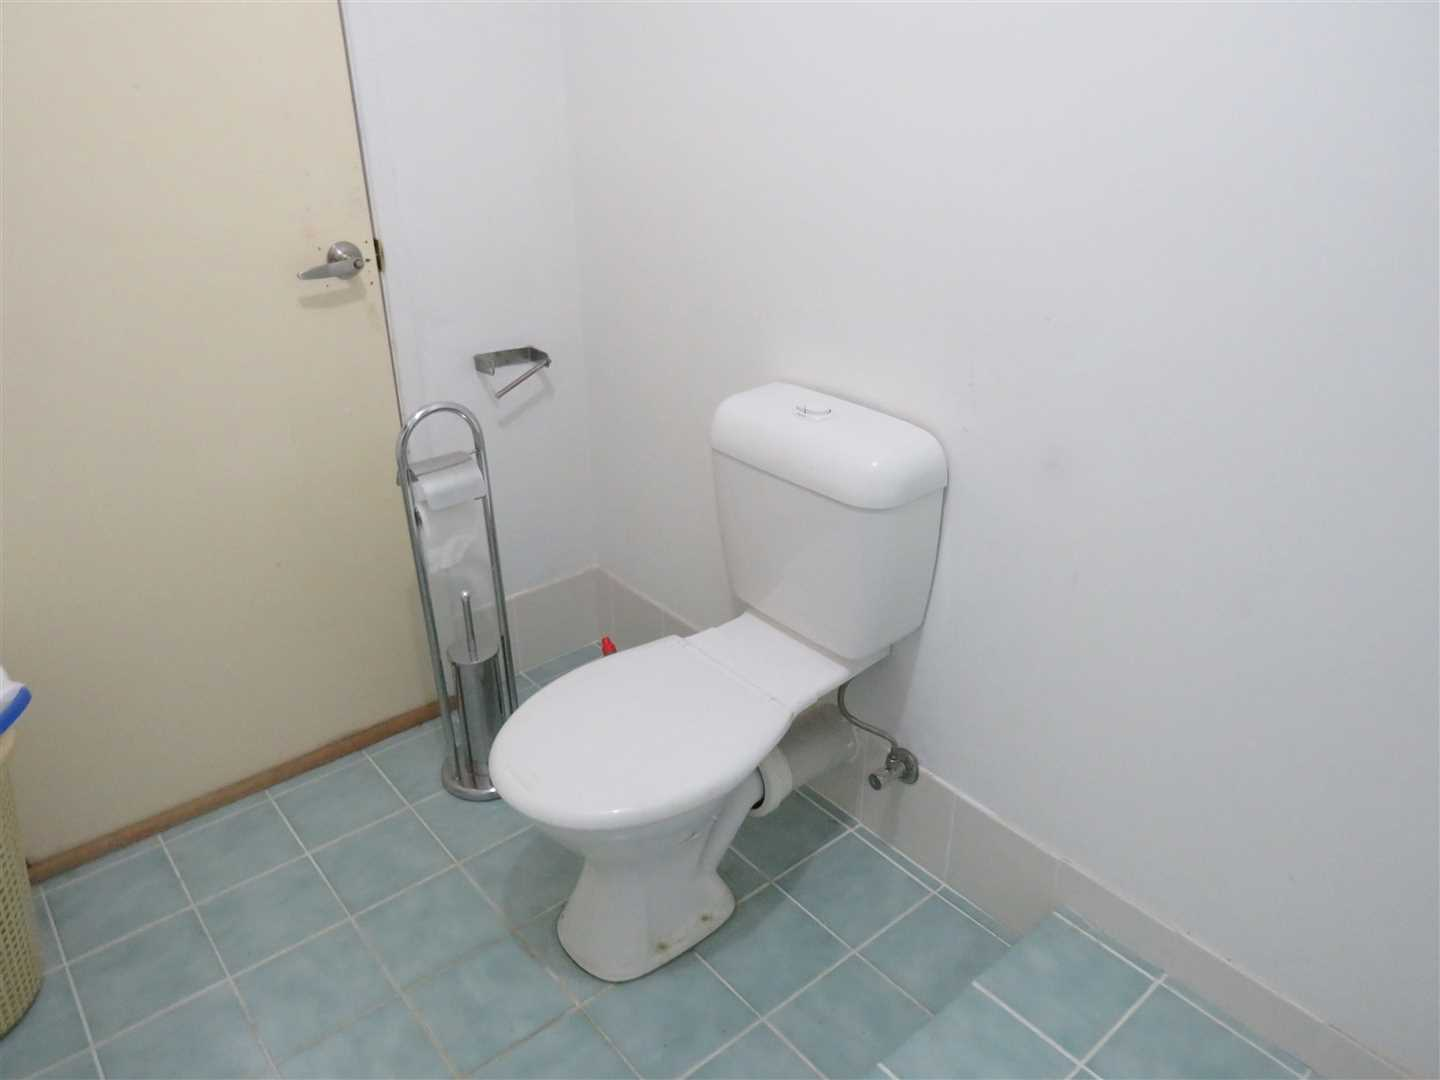 toilet in shed unit